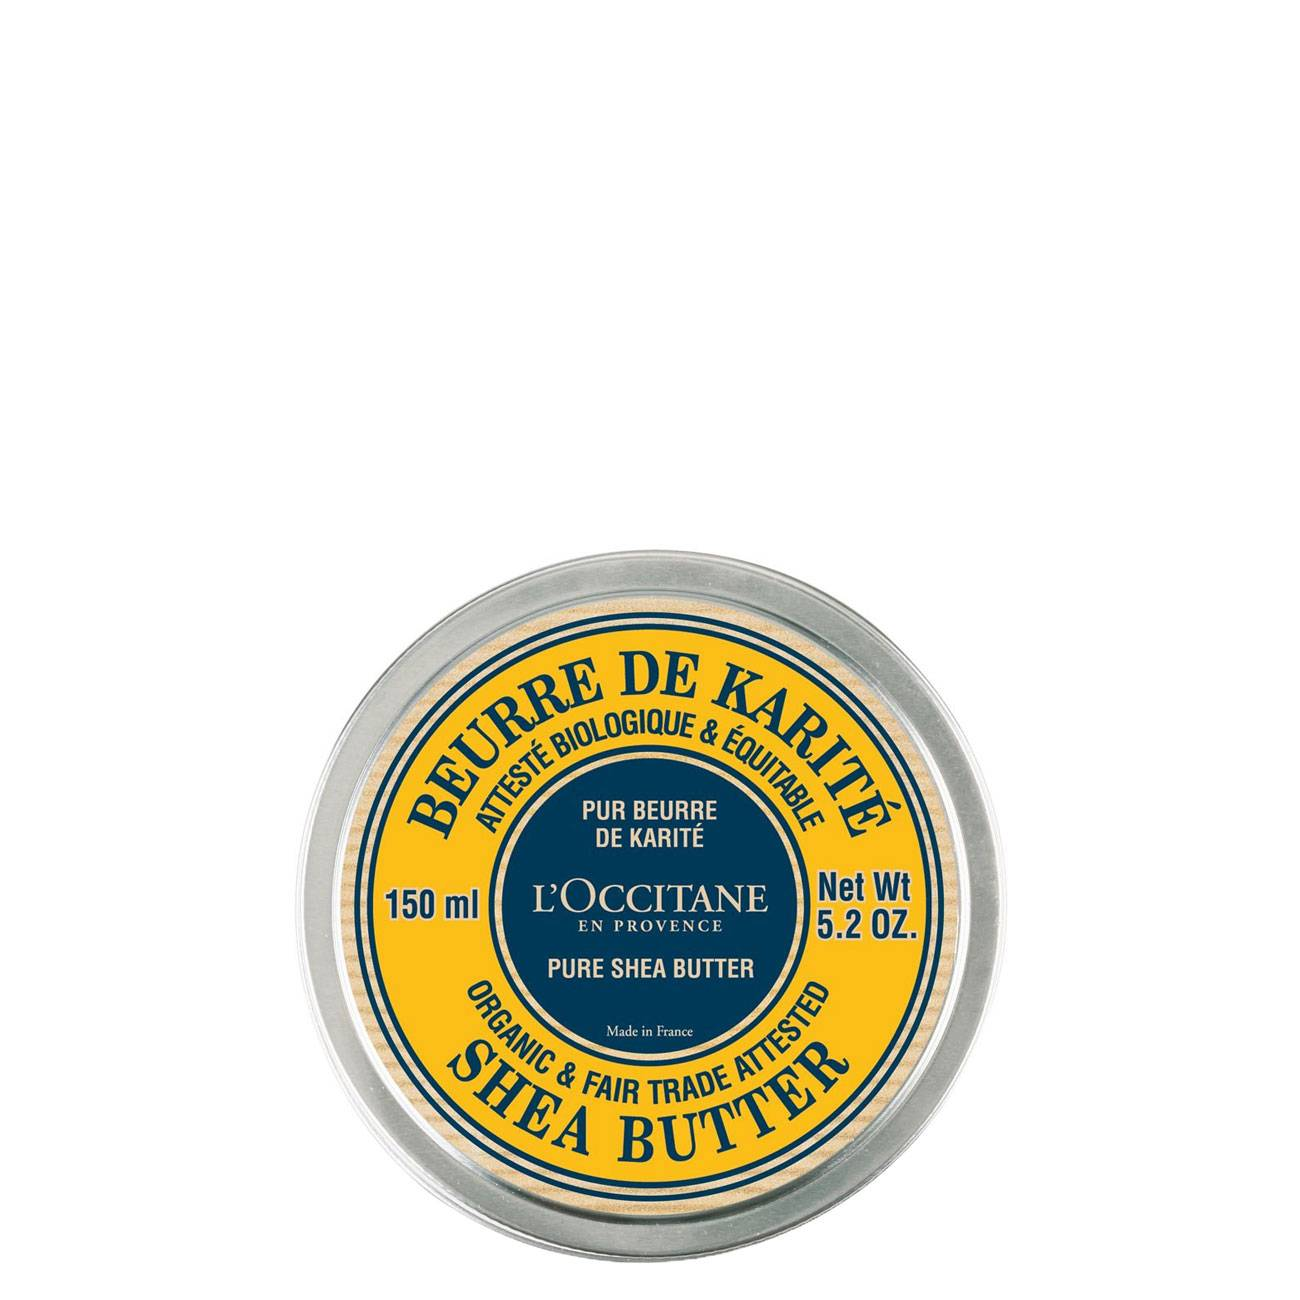 PURE SHEA BUTTER 150 ML